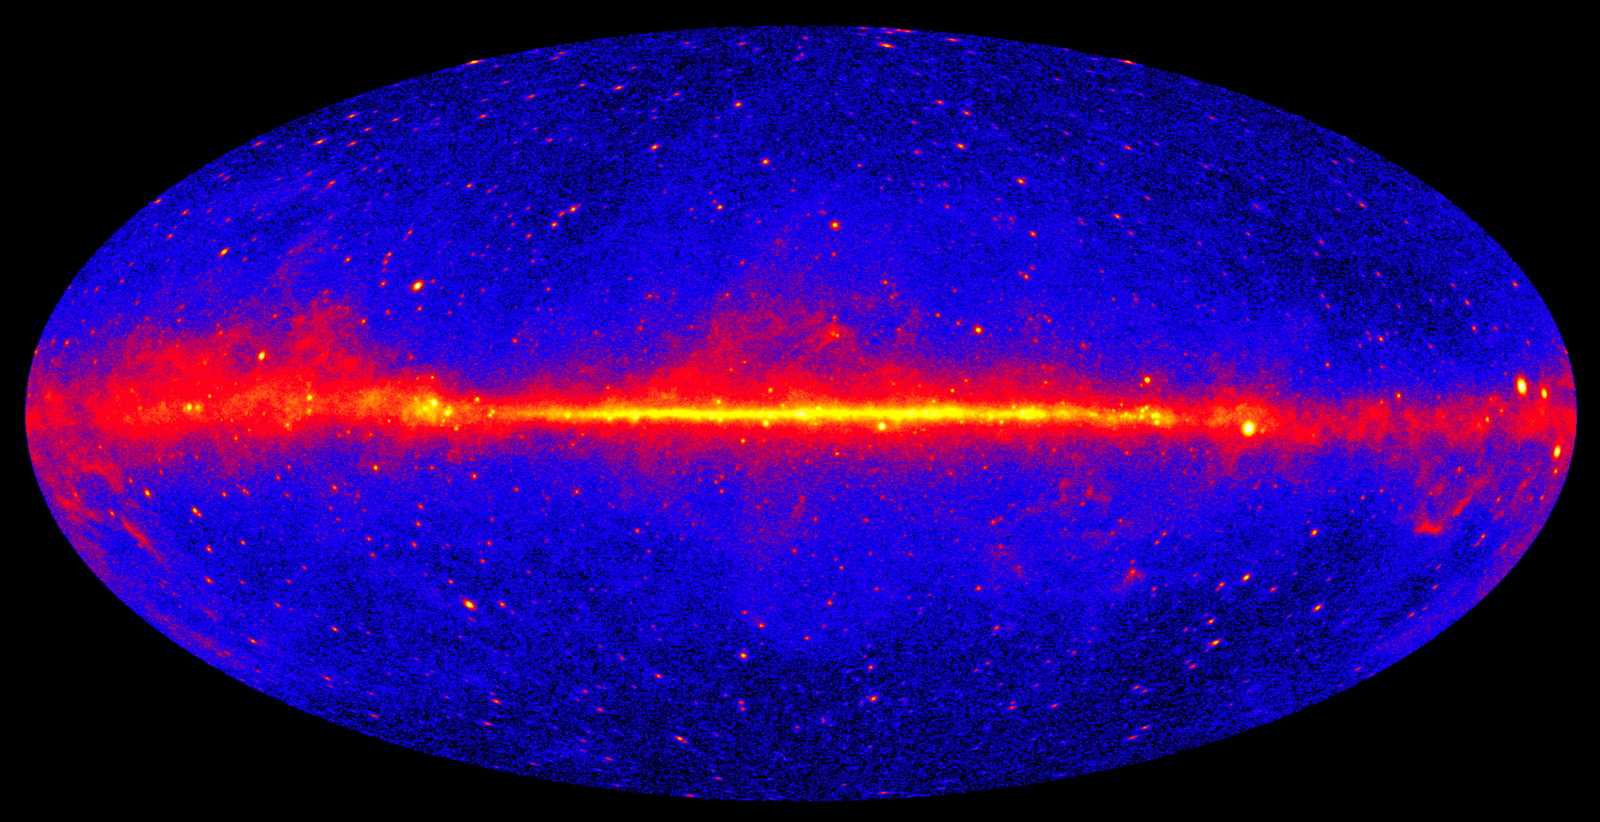 Five years of data from Fermi